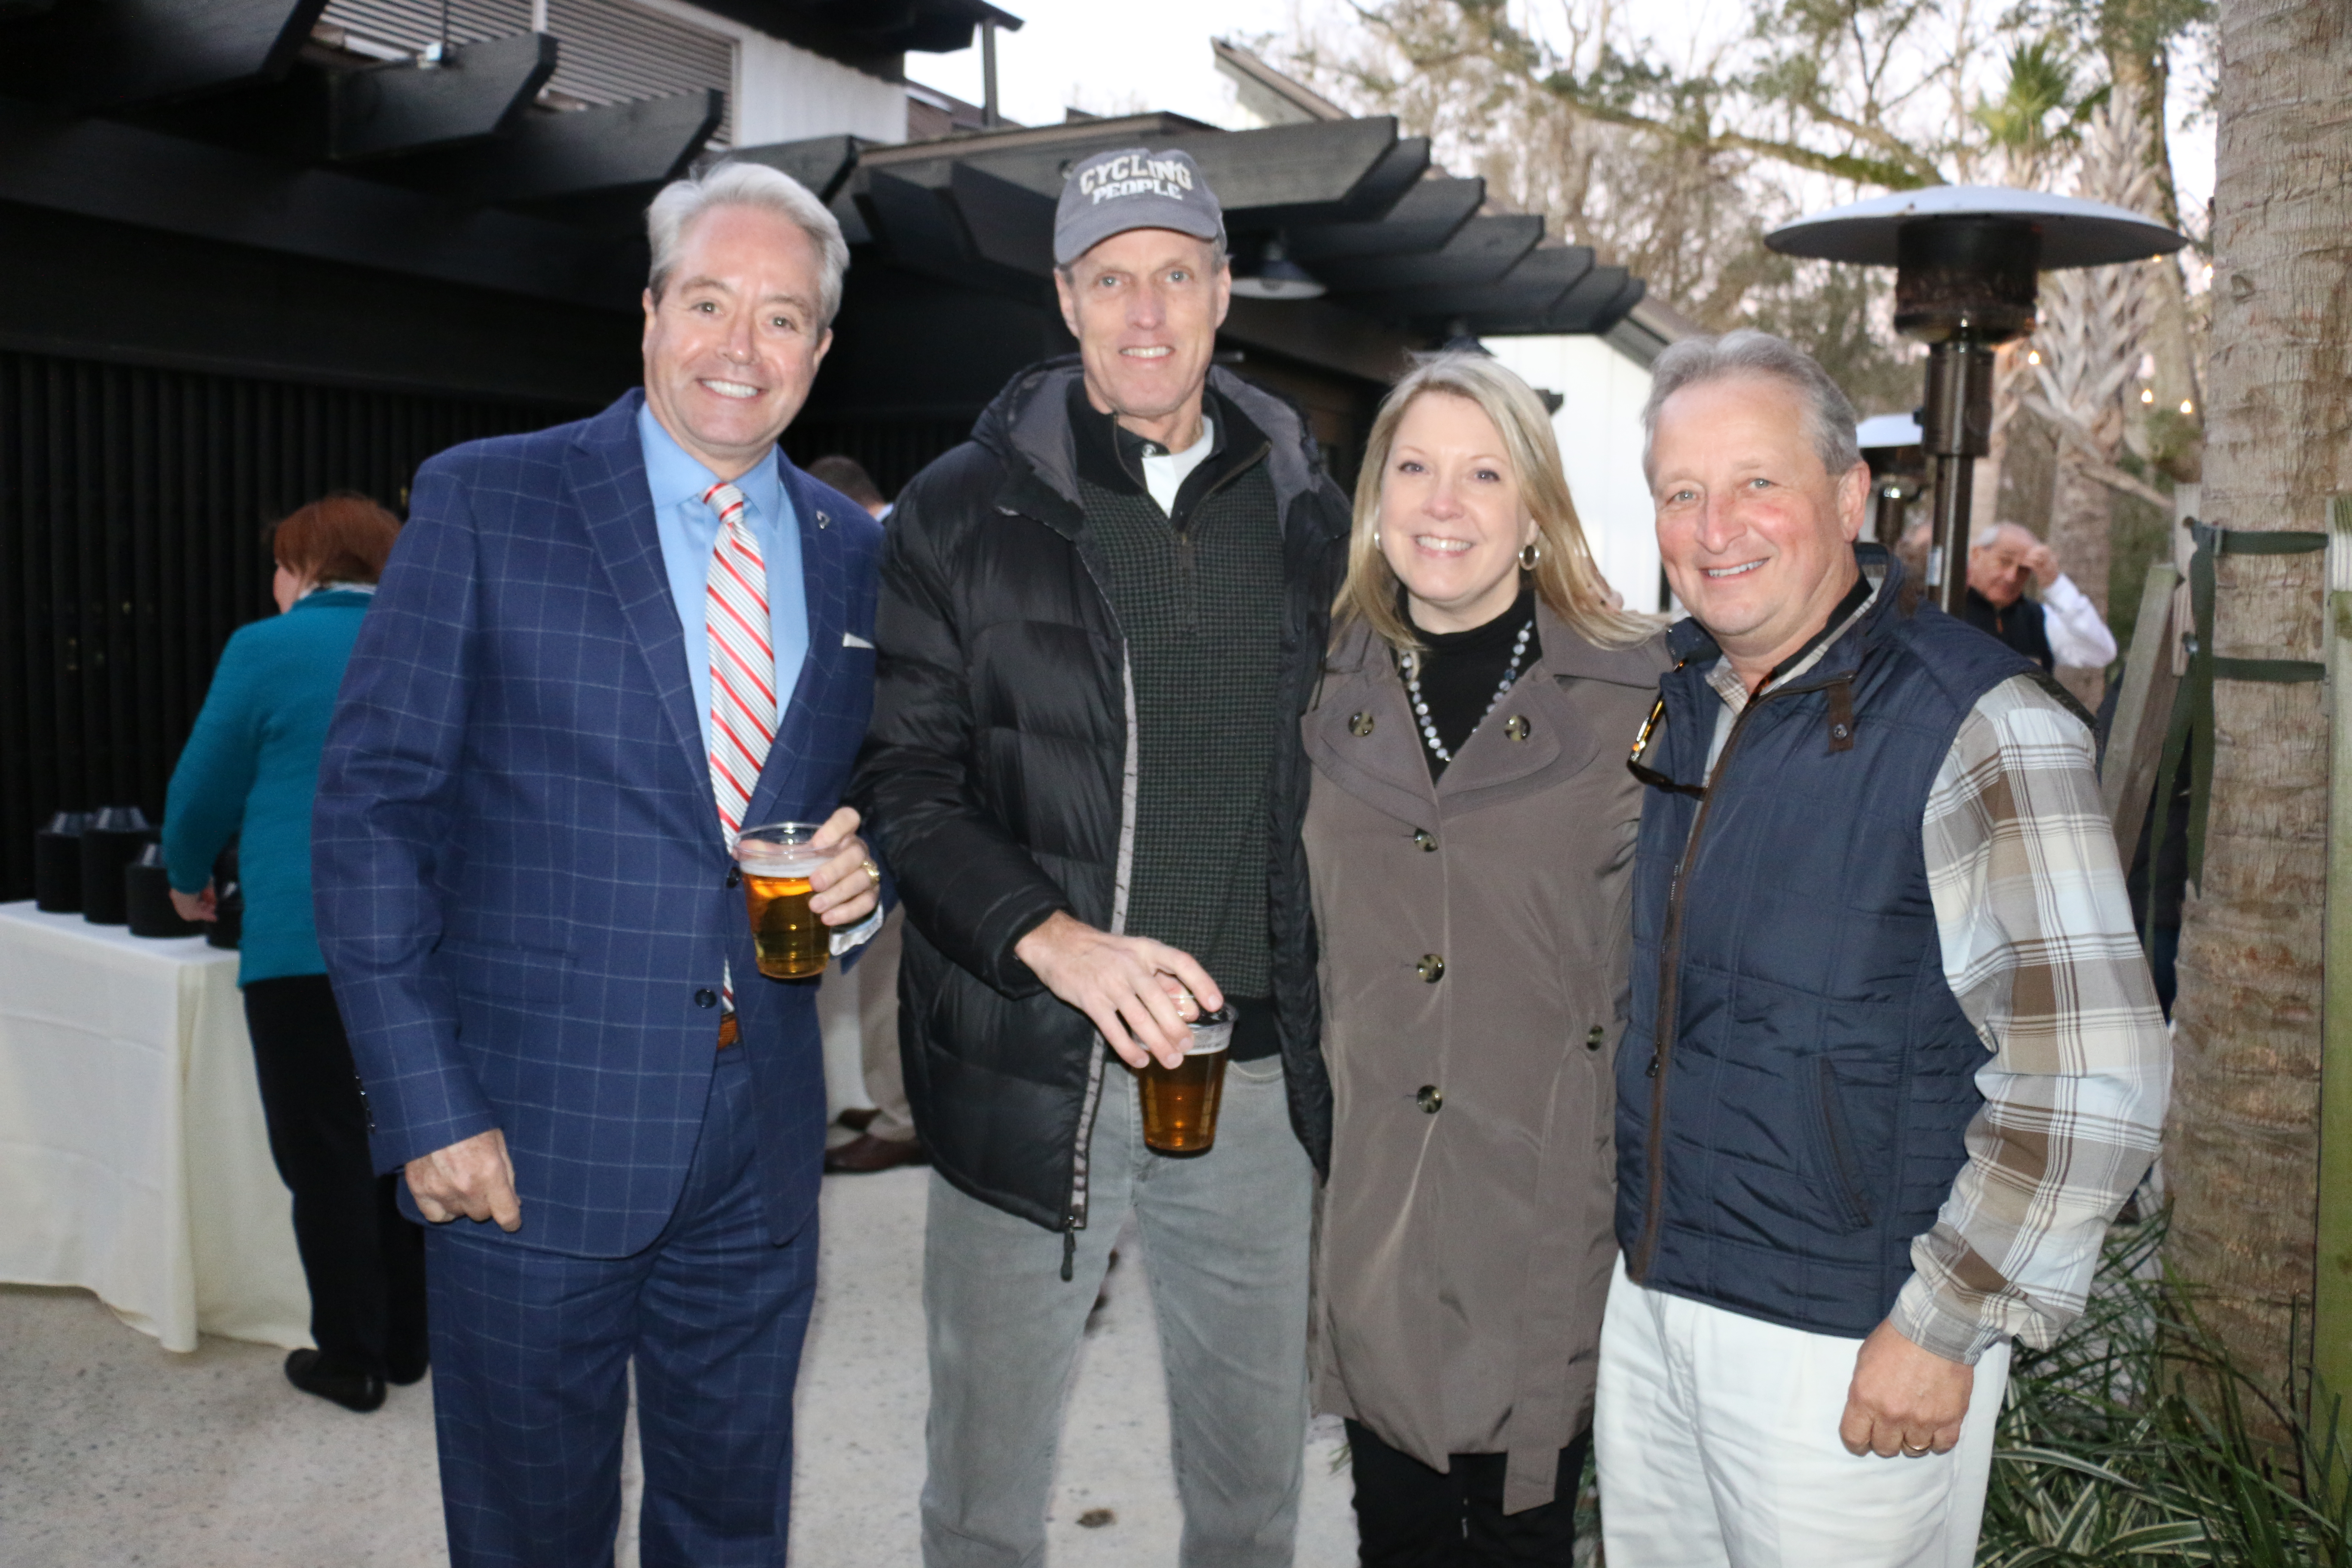 Local real estate agents Mike White, Rick Adams, Chris Phillips and Jeff Leonard show solidarity at the oyster roast last Thursday, Feb. 27.